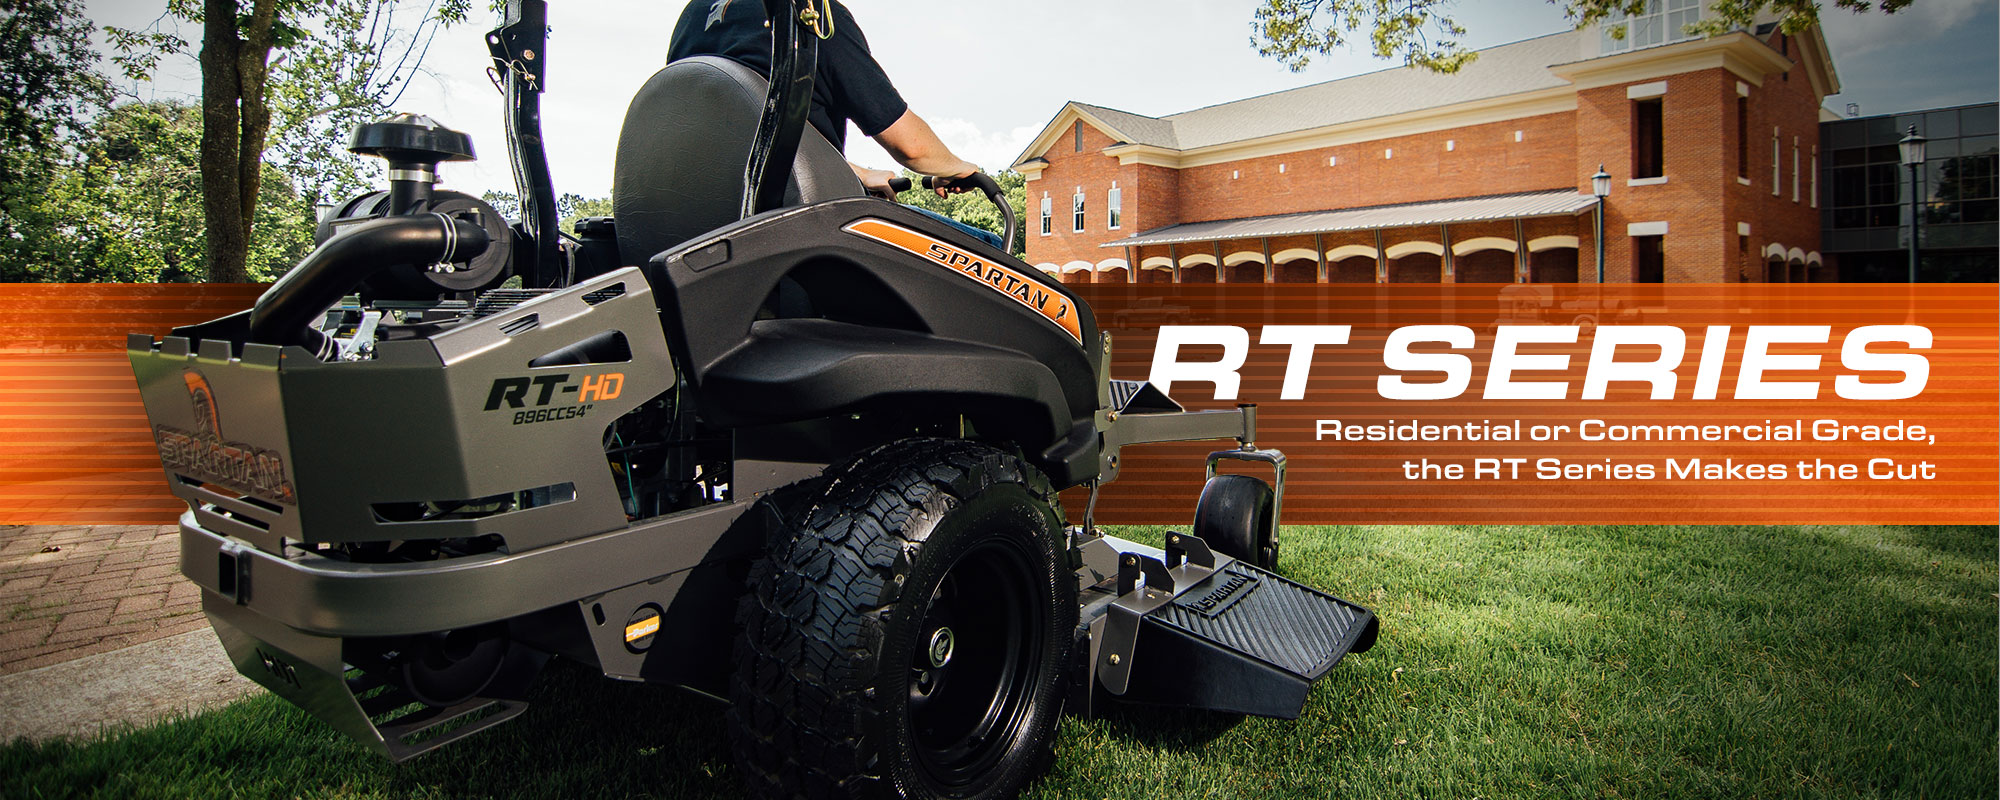 Spartan Mowers | Zero Turn Lawn Mowers